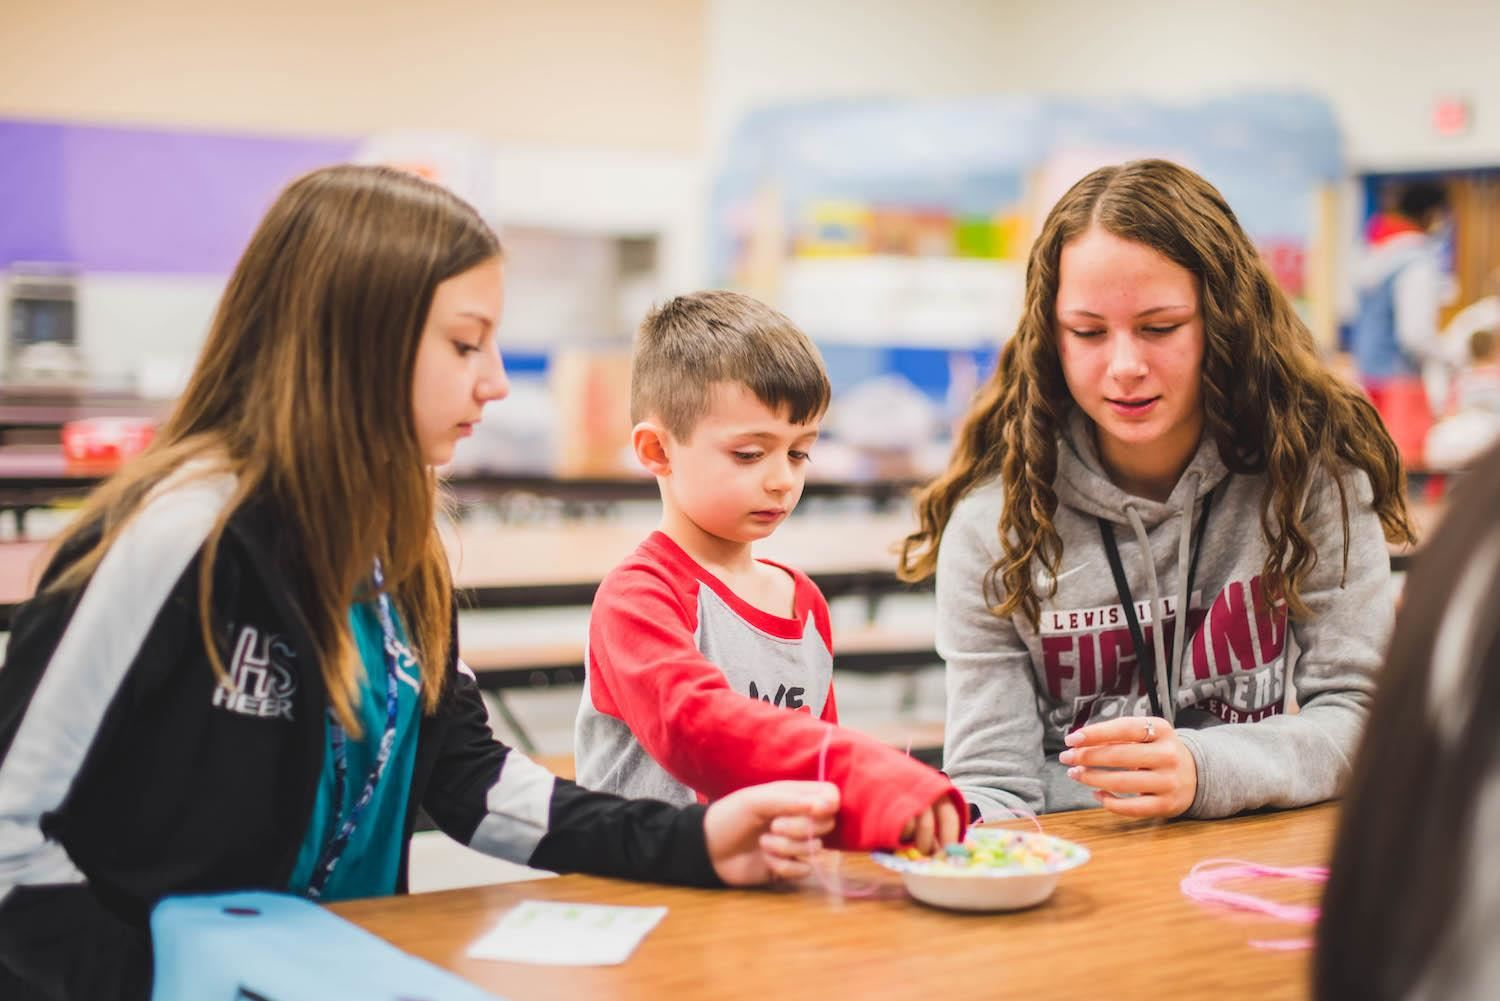 two older students help younger student string cereal onto necklace.